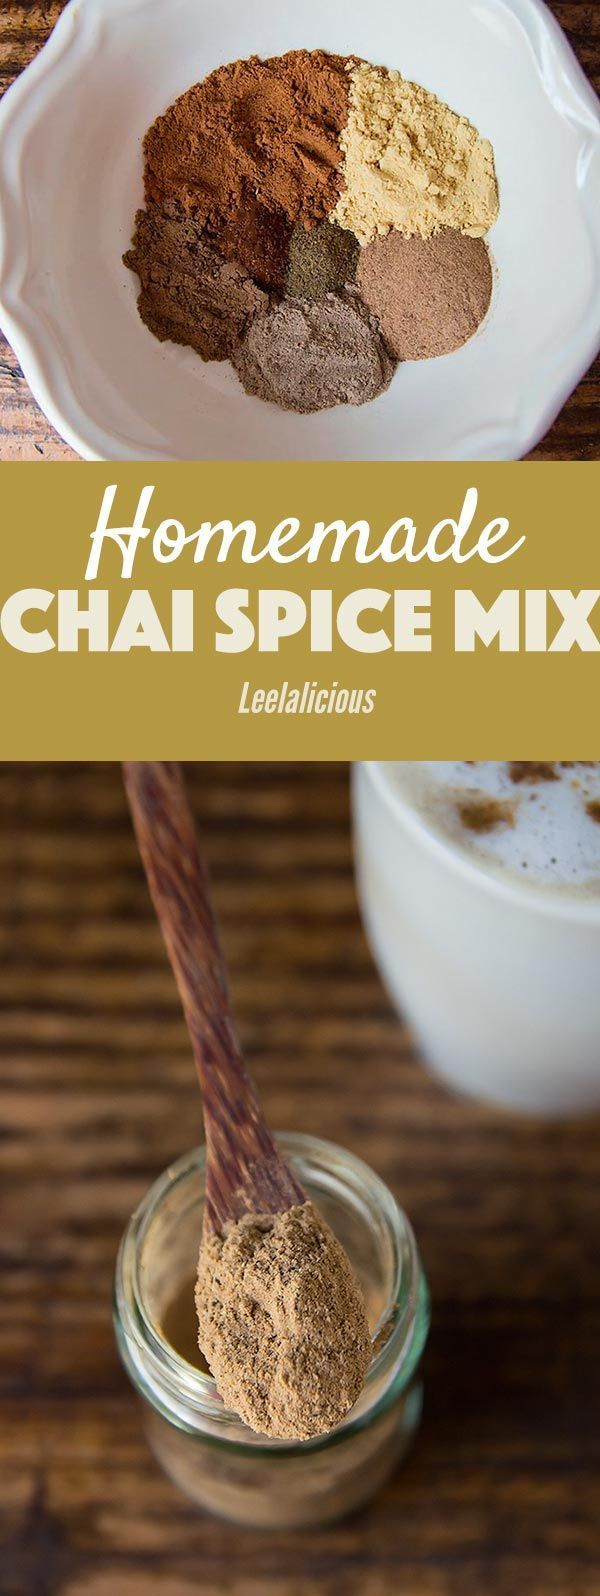 If you love chai lattes, you need to whip up this homemade Masala Chai Spice mix! With this seasoning mix on hand, you can easily give your baked treats a delicious chai flavor or quickly make your beloved chai latte at home.  Sponsored | Tea | Spices | Recipe | Baking